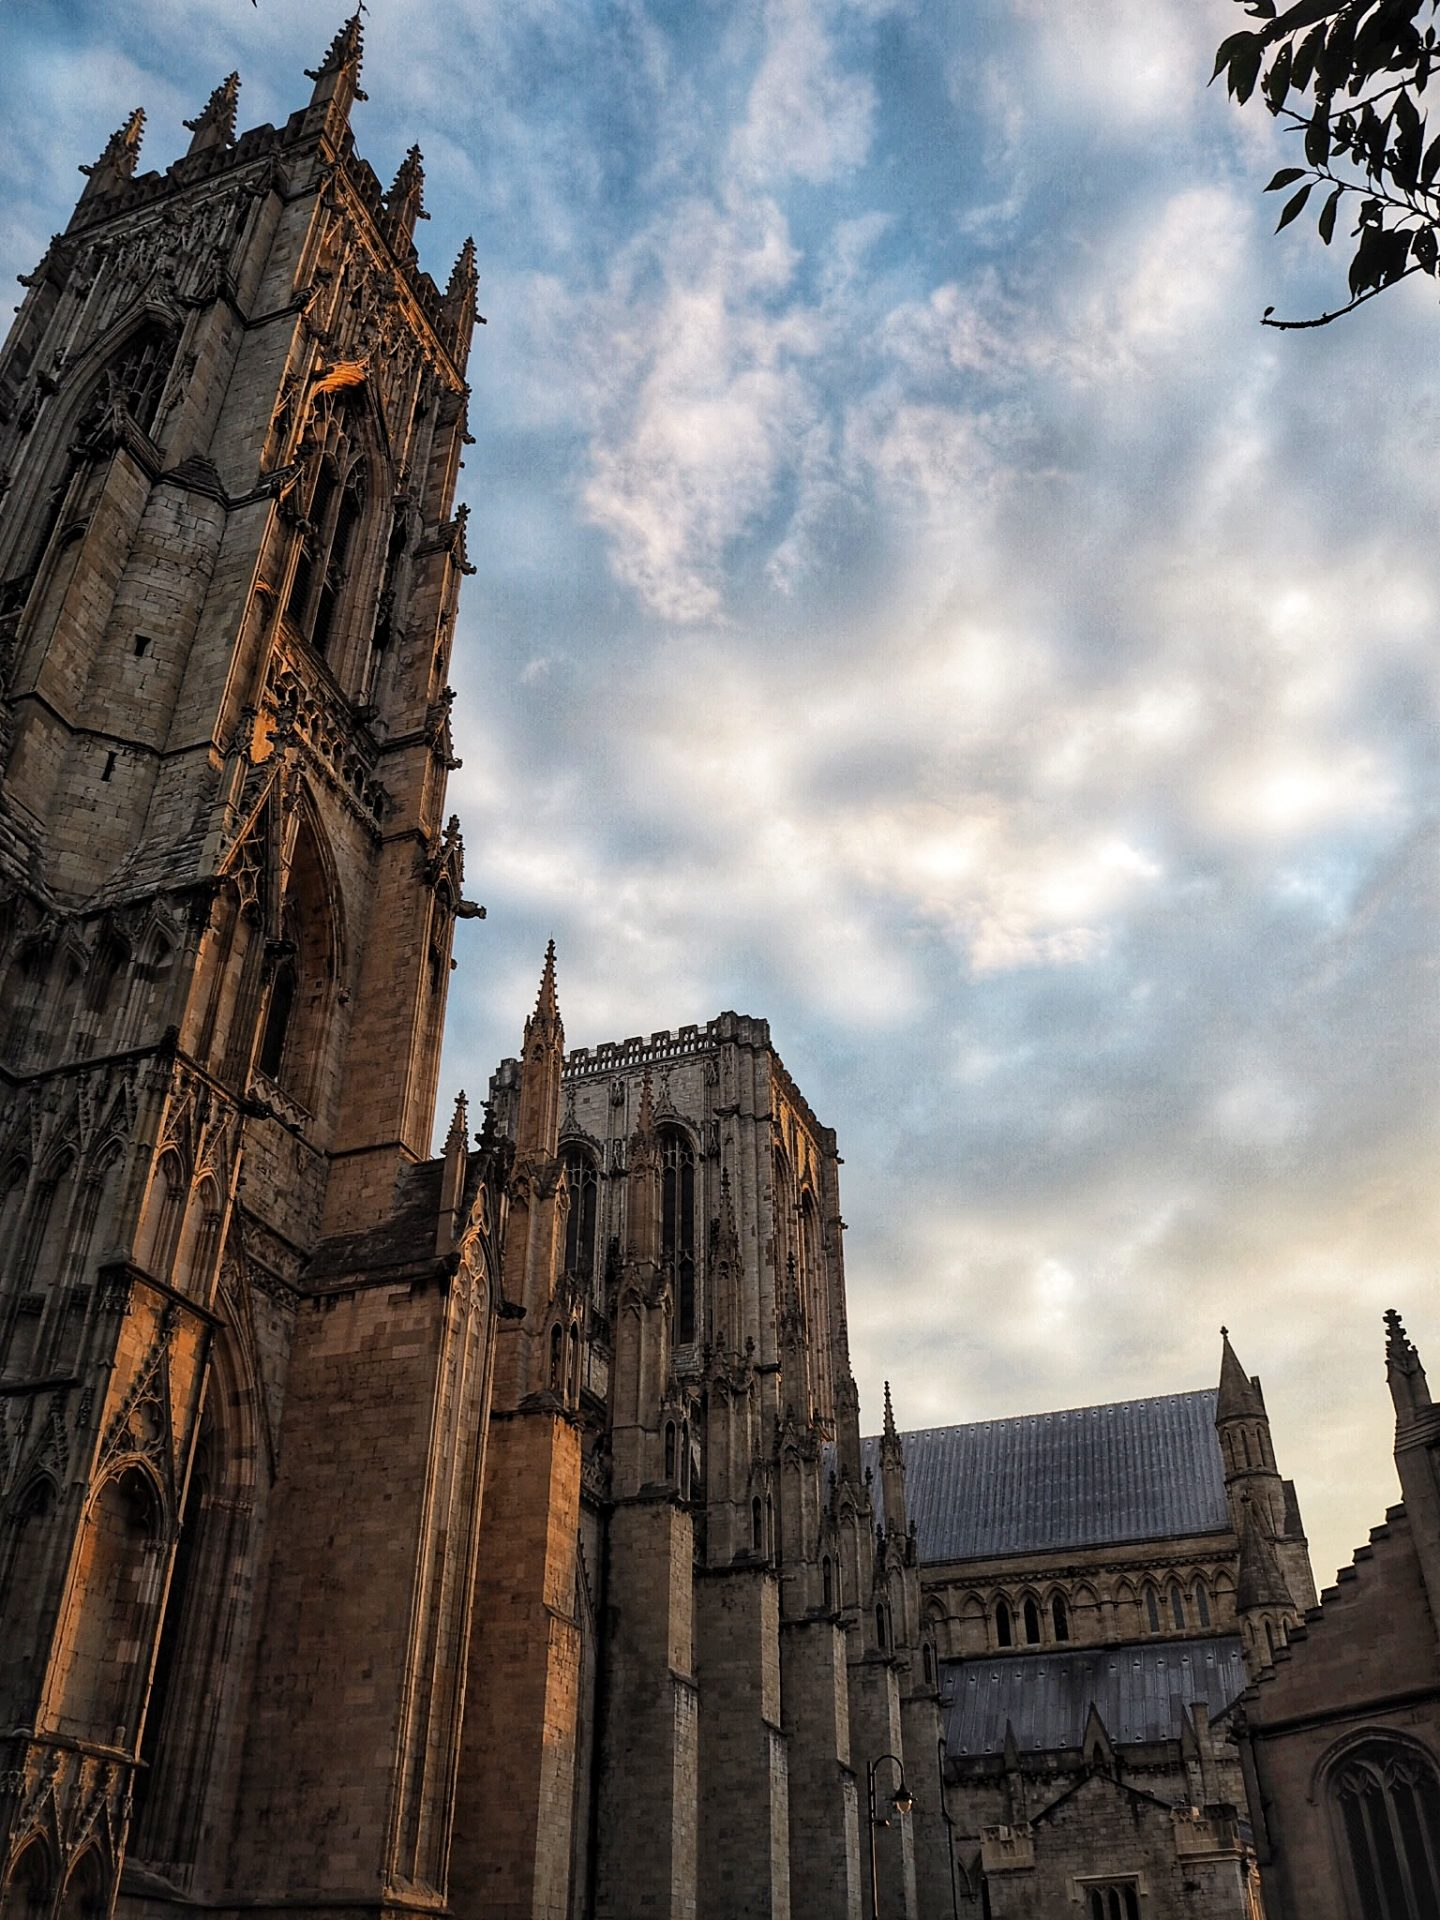 A History Travel Guide to York